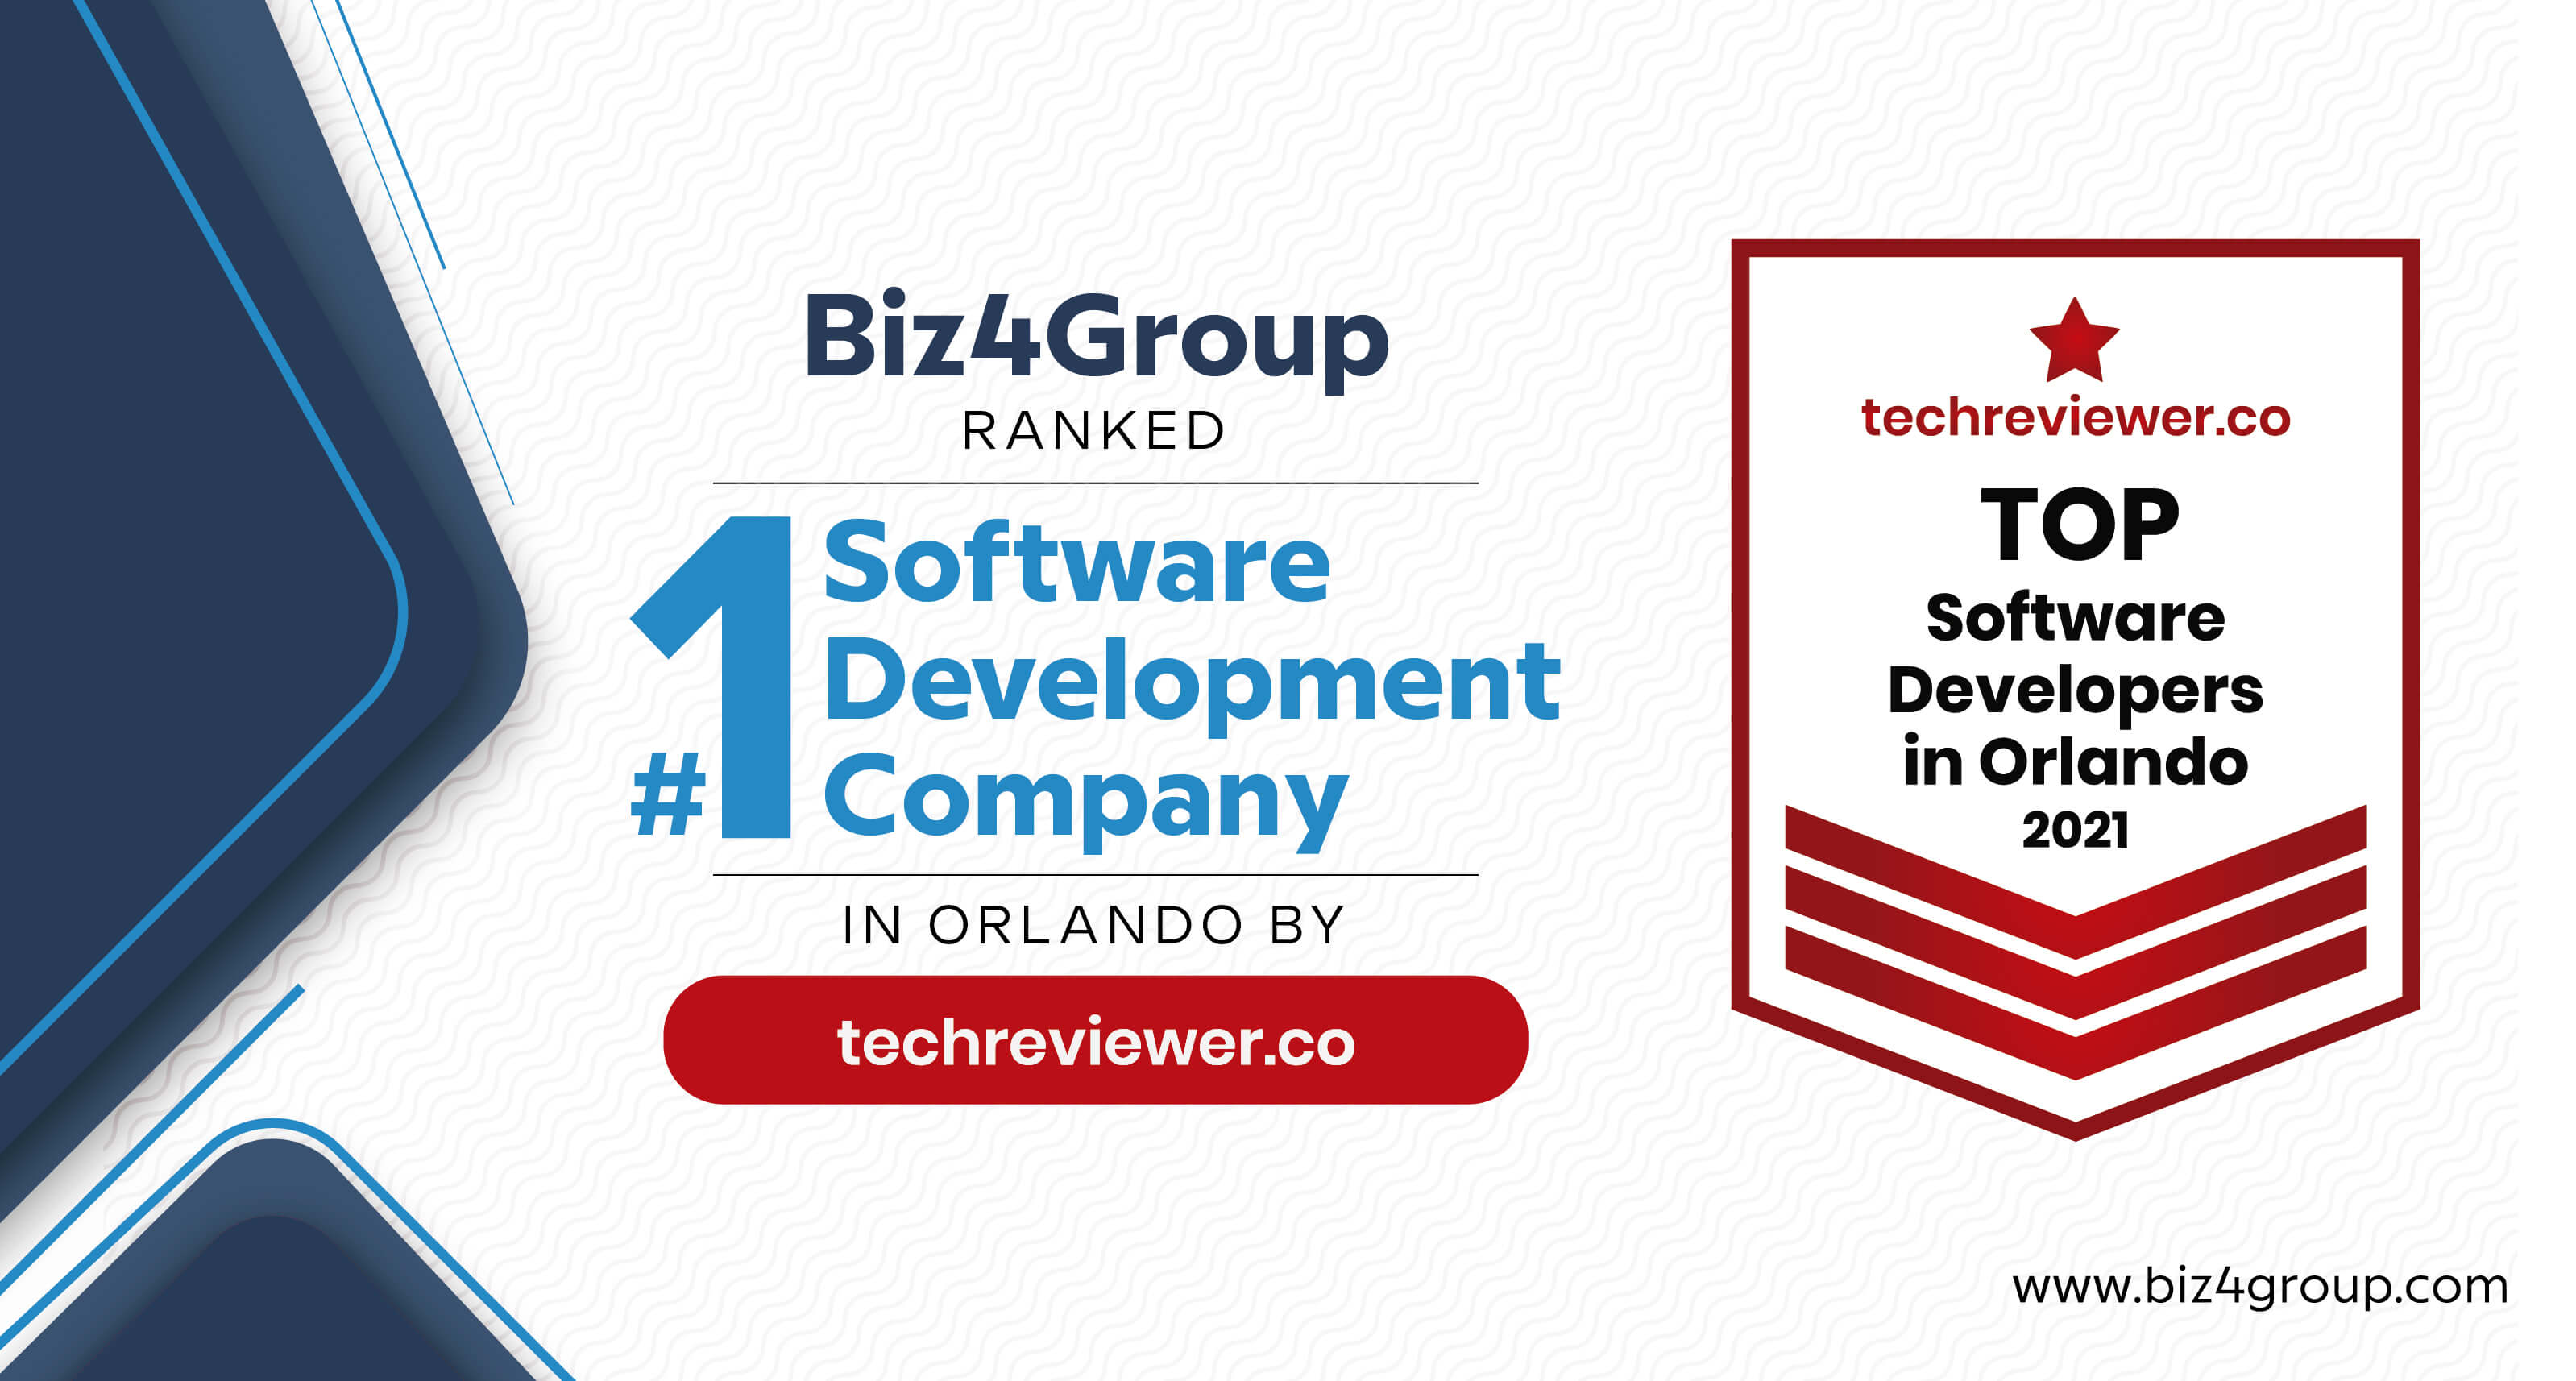 biz4group-ranked-no1-software-development-company-in-orlando-by-techreviewer